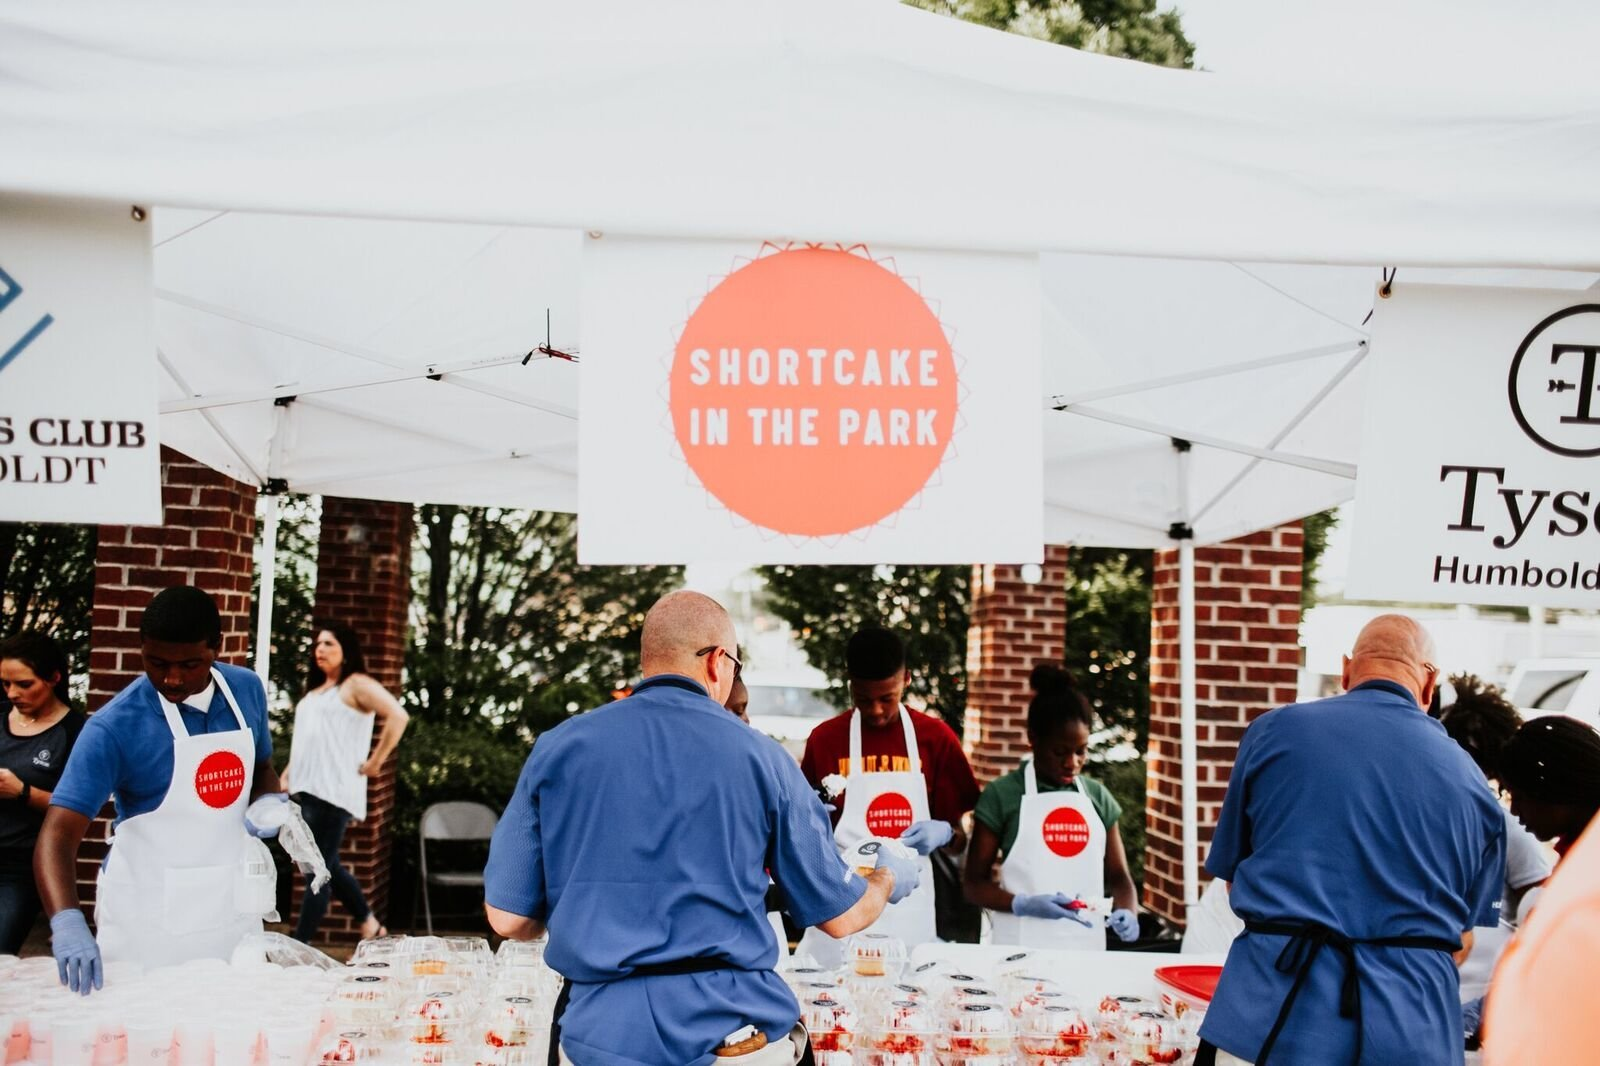 2019 West Tennessee Strawberry Festival - Shortcake in the park - 67